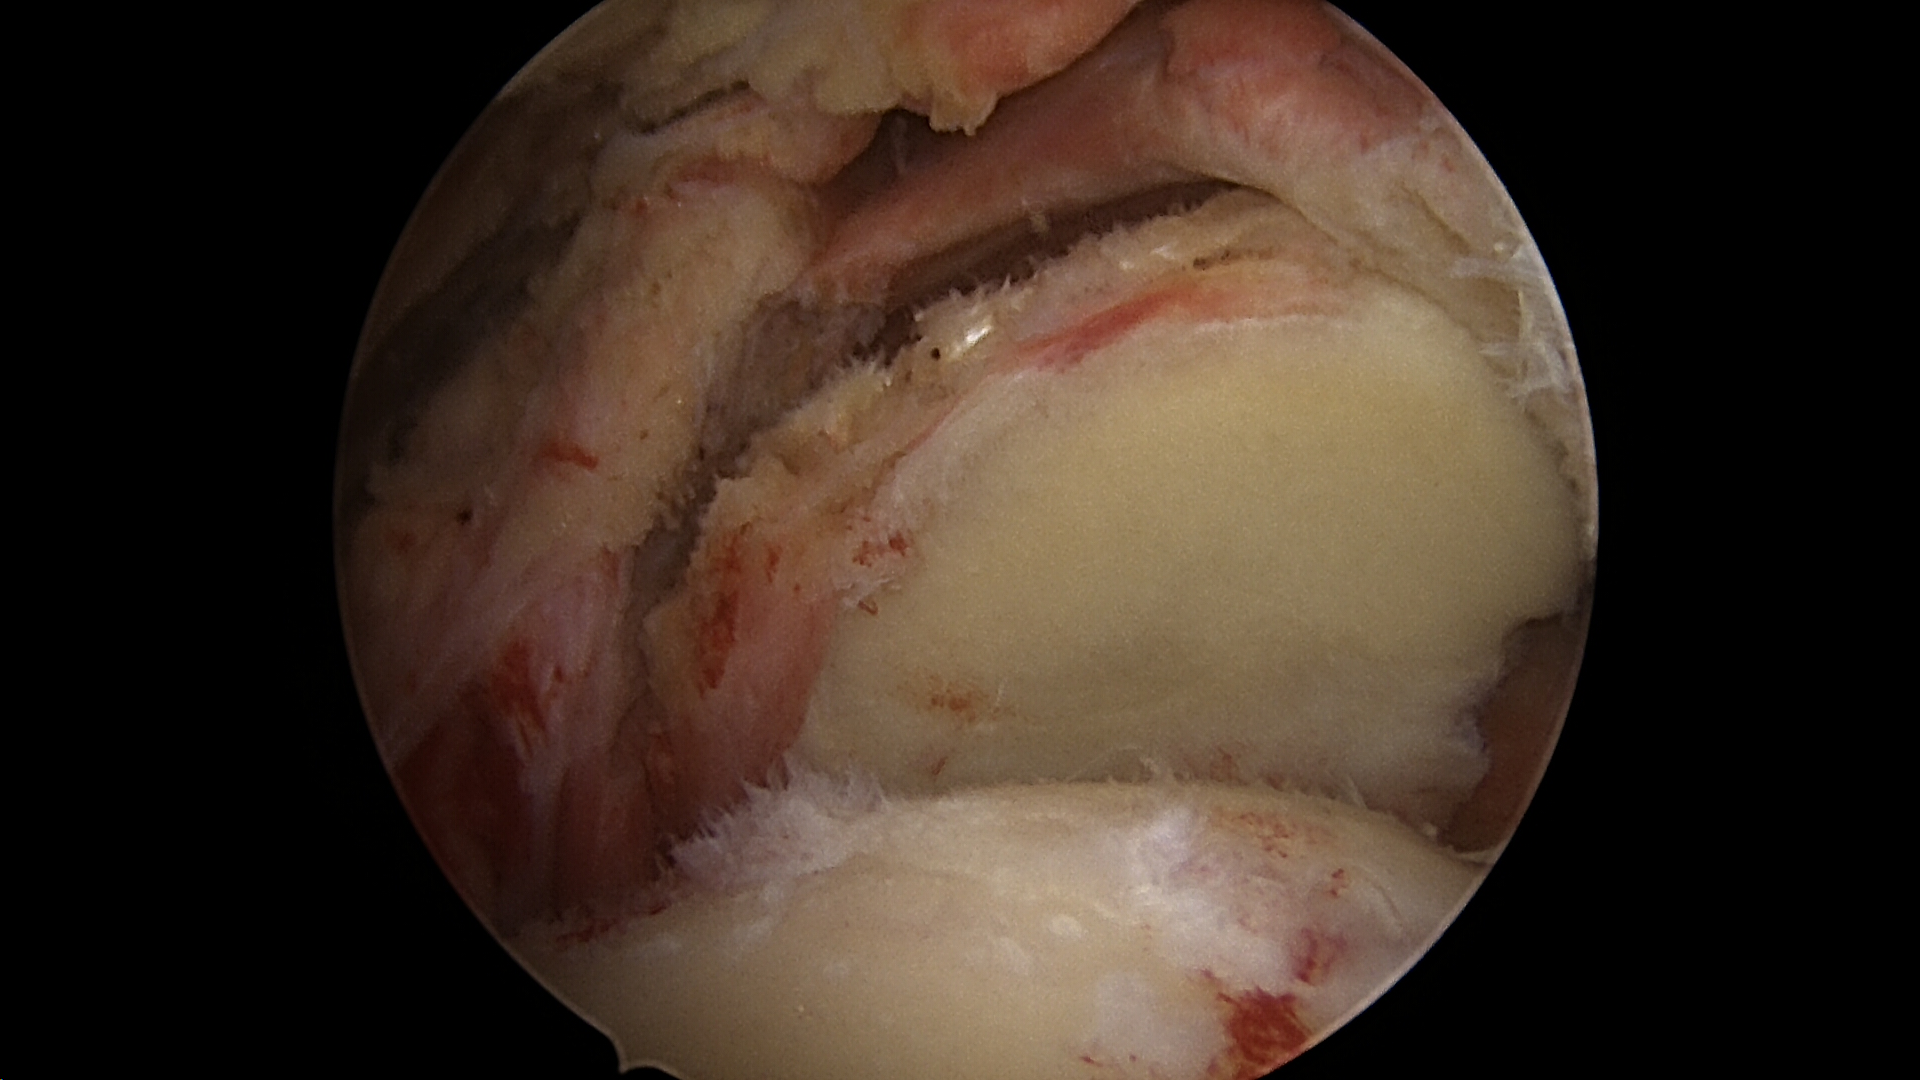 Massive retracted irreparable rotator cuff tear viewed from the lateral portal